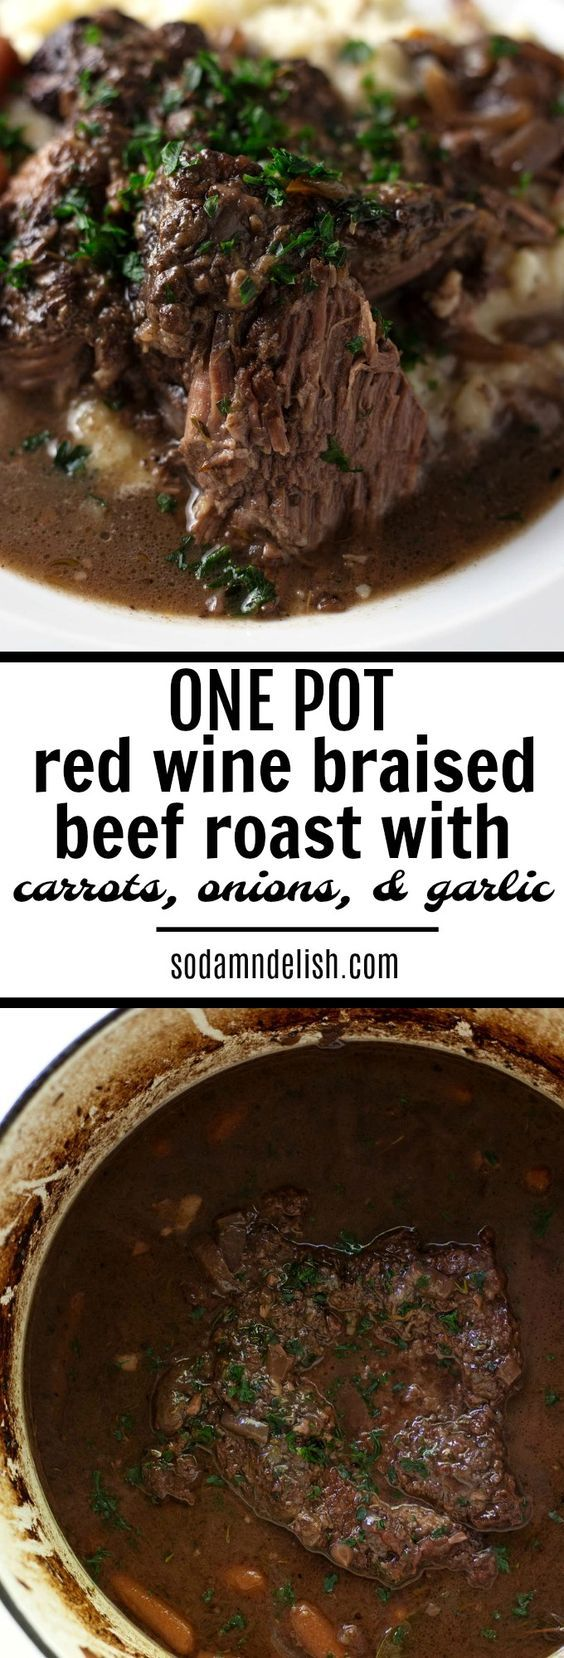 This red wine braised beef roast is an easy one-pot meal that is downright comfort food. One pot + beef roast + carrots + onions + garlic = food for the soul.